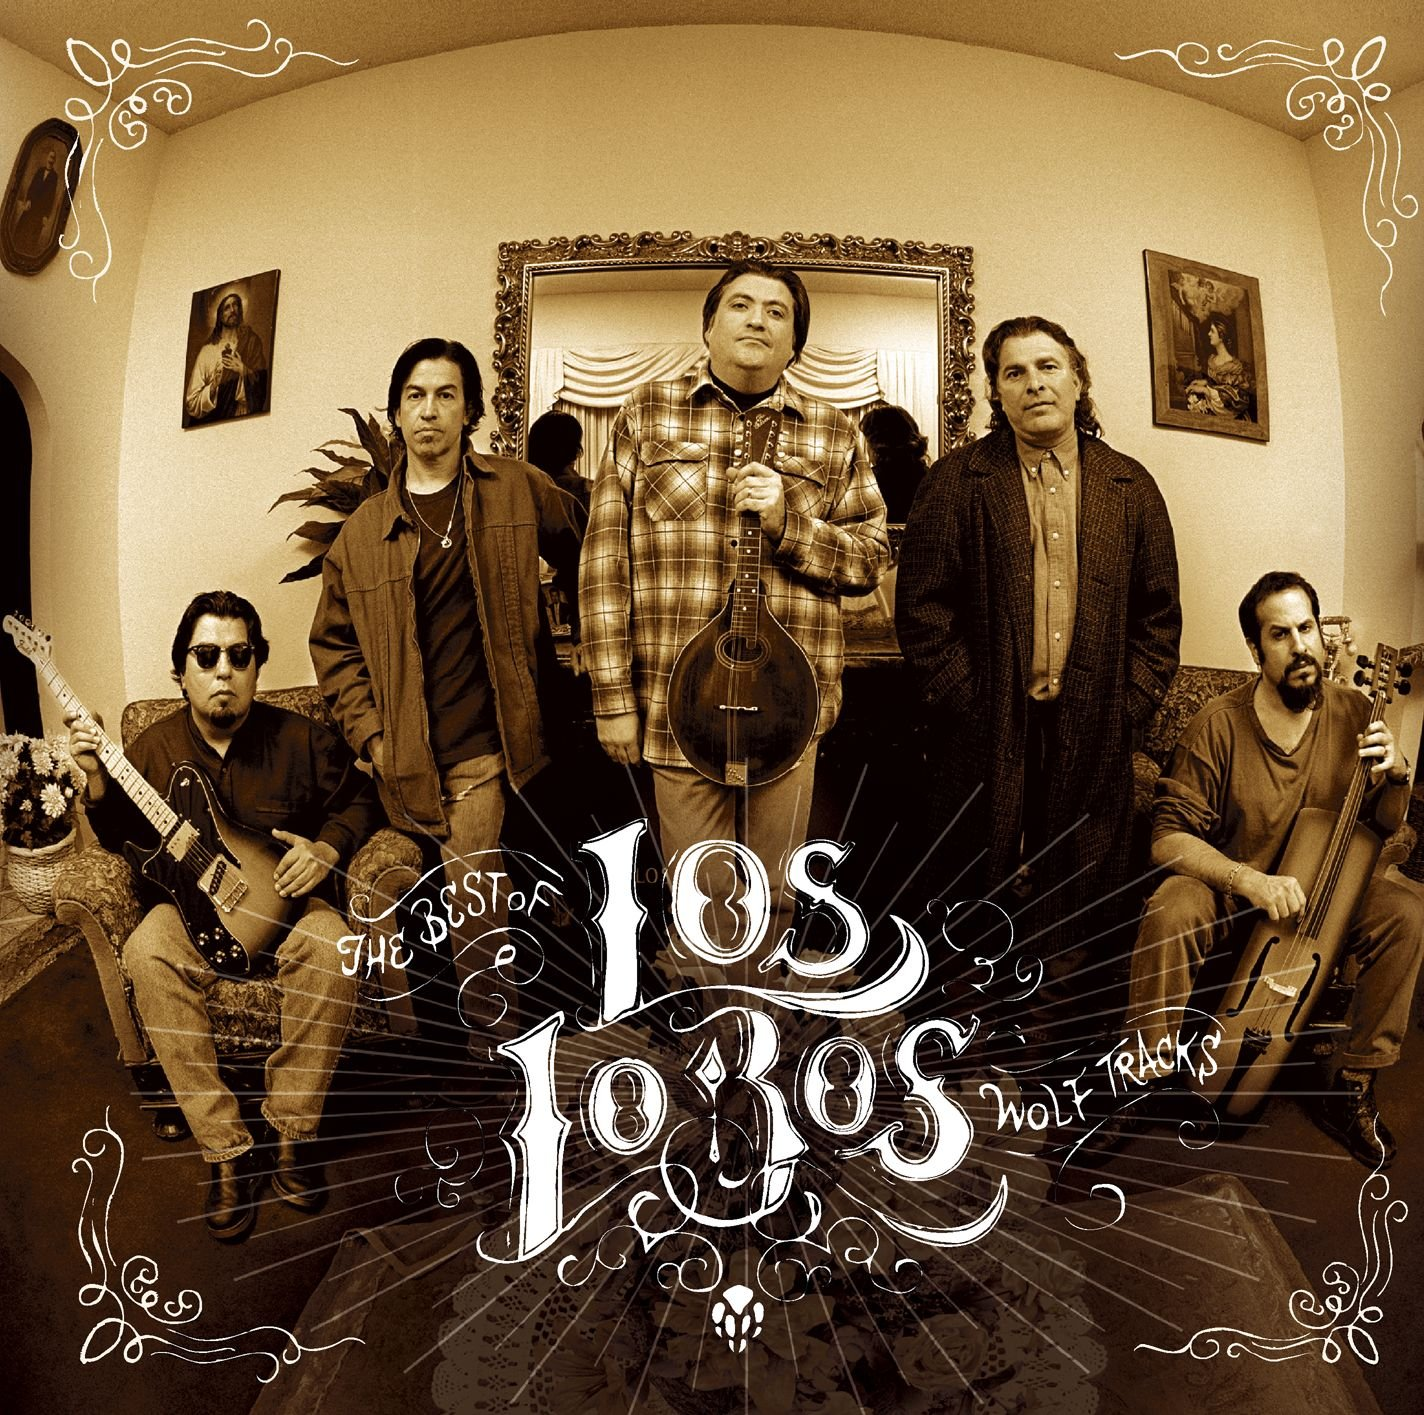 Los Lobos - Wolf Tracks-The Very Best Of Los Lobos - Amazon.com Music